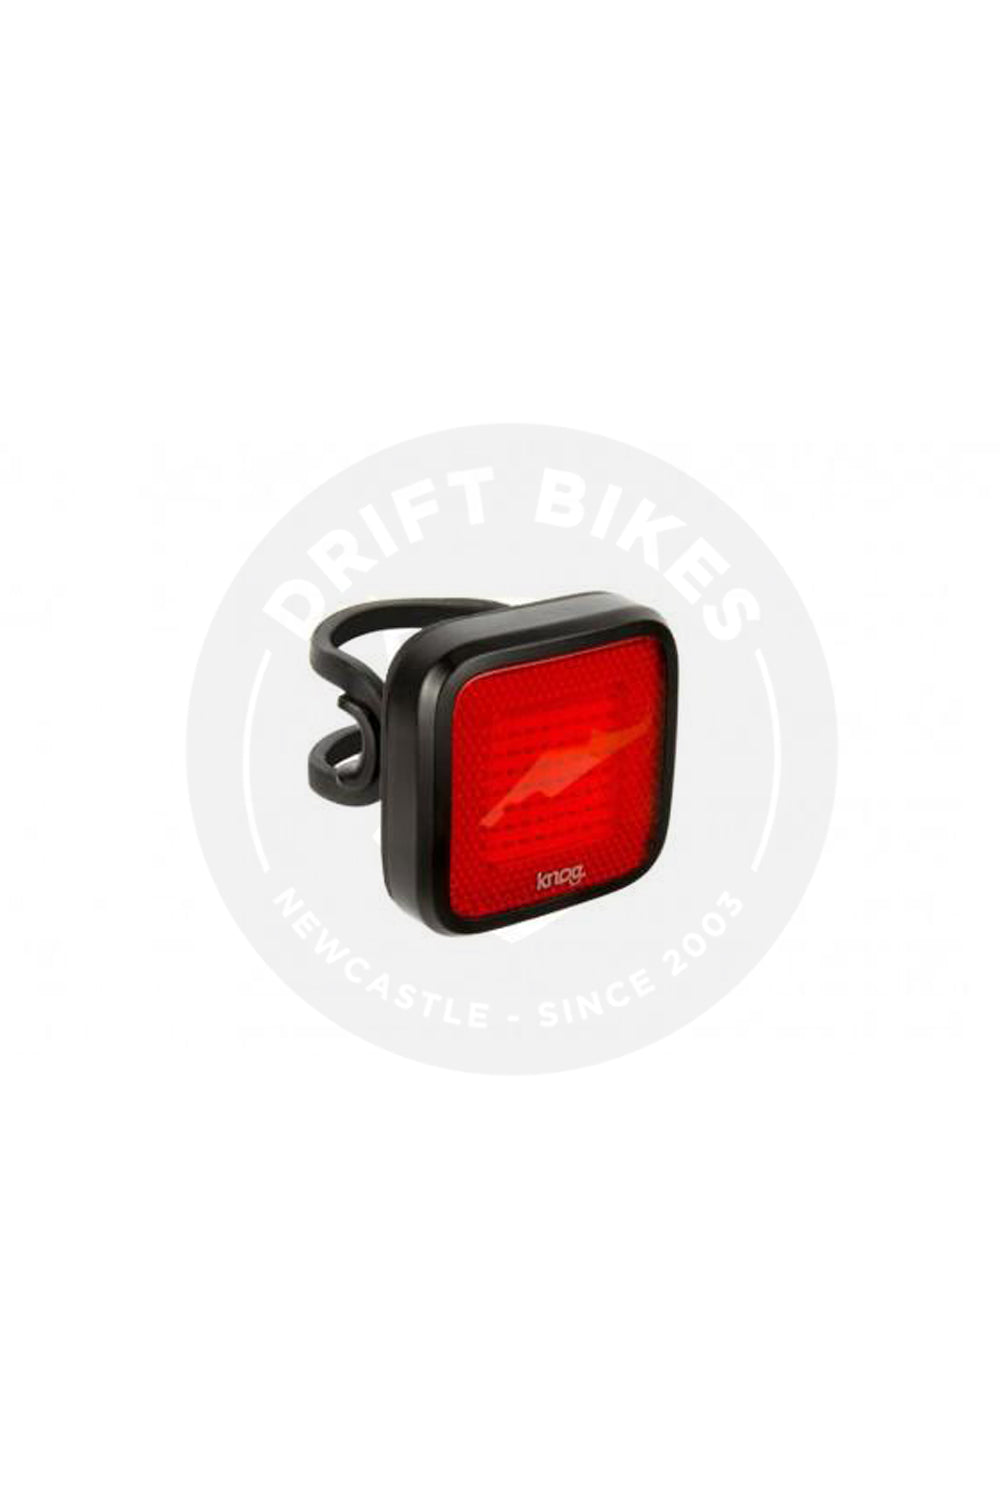 Light Knog Blinder Mob Mr Chips Black Rear